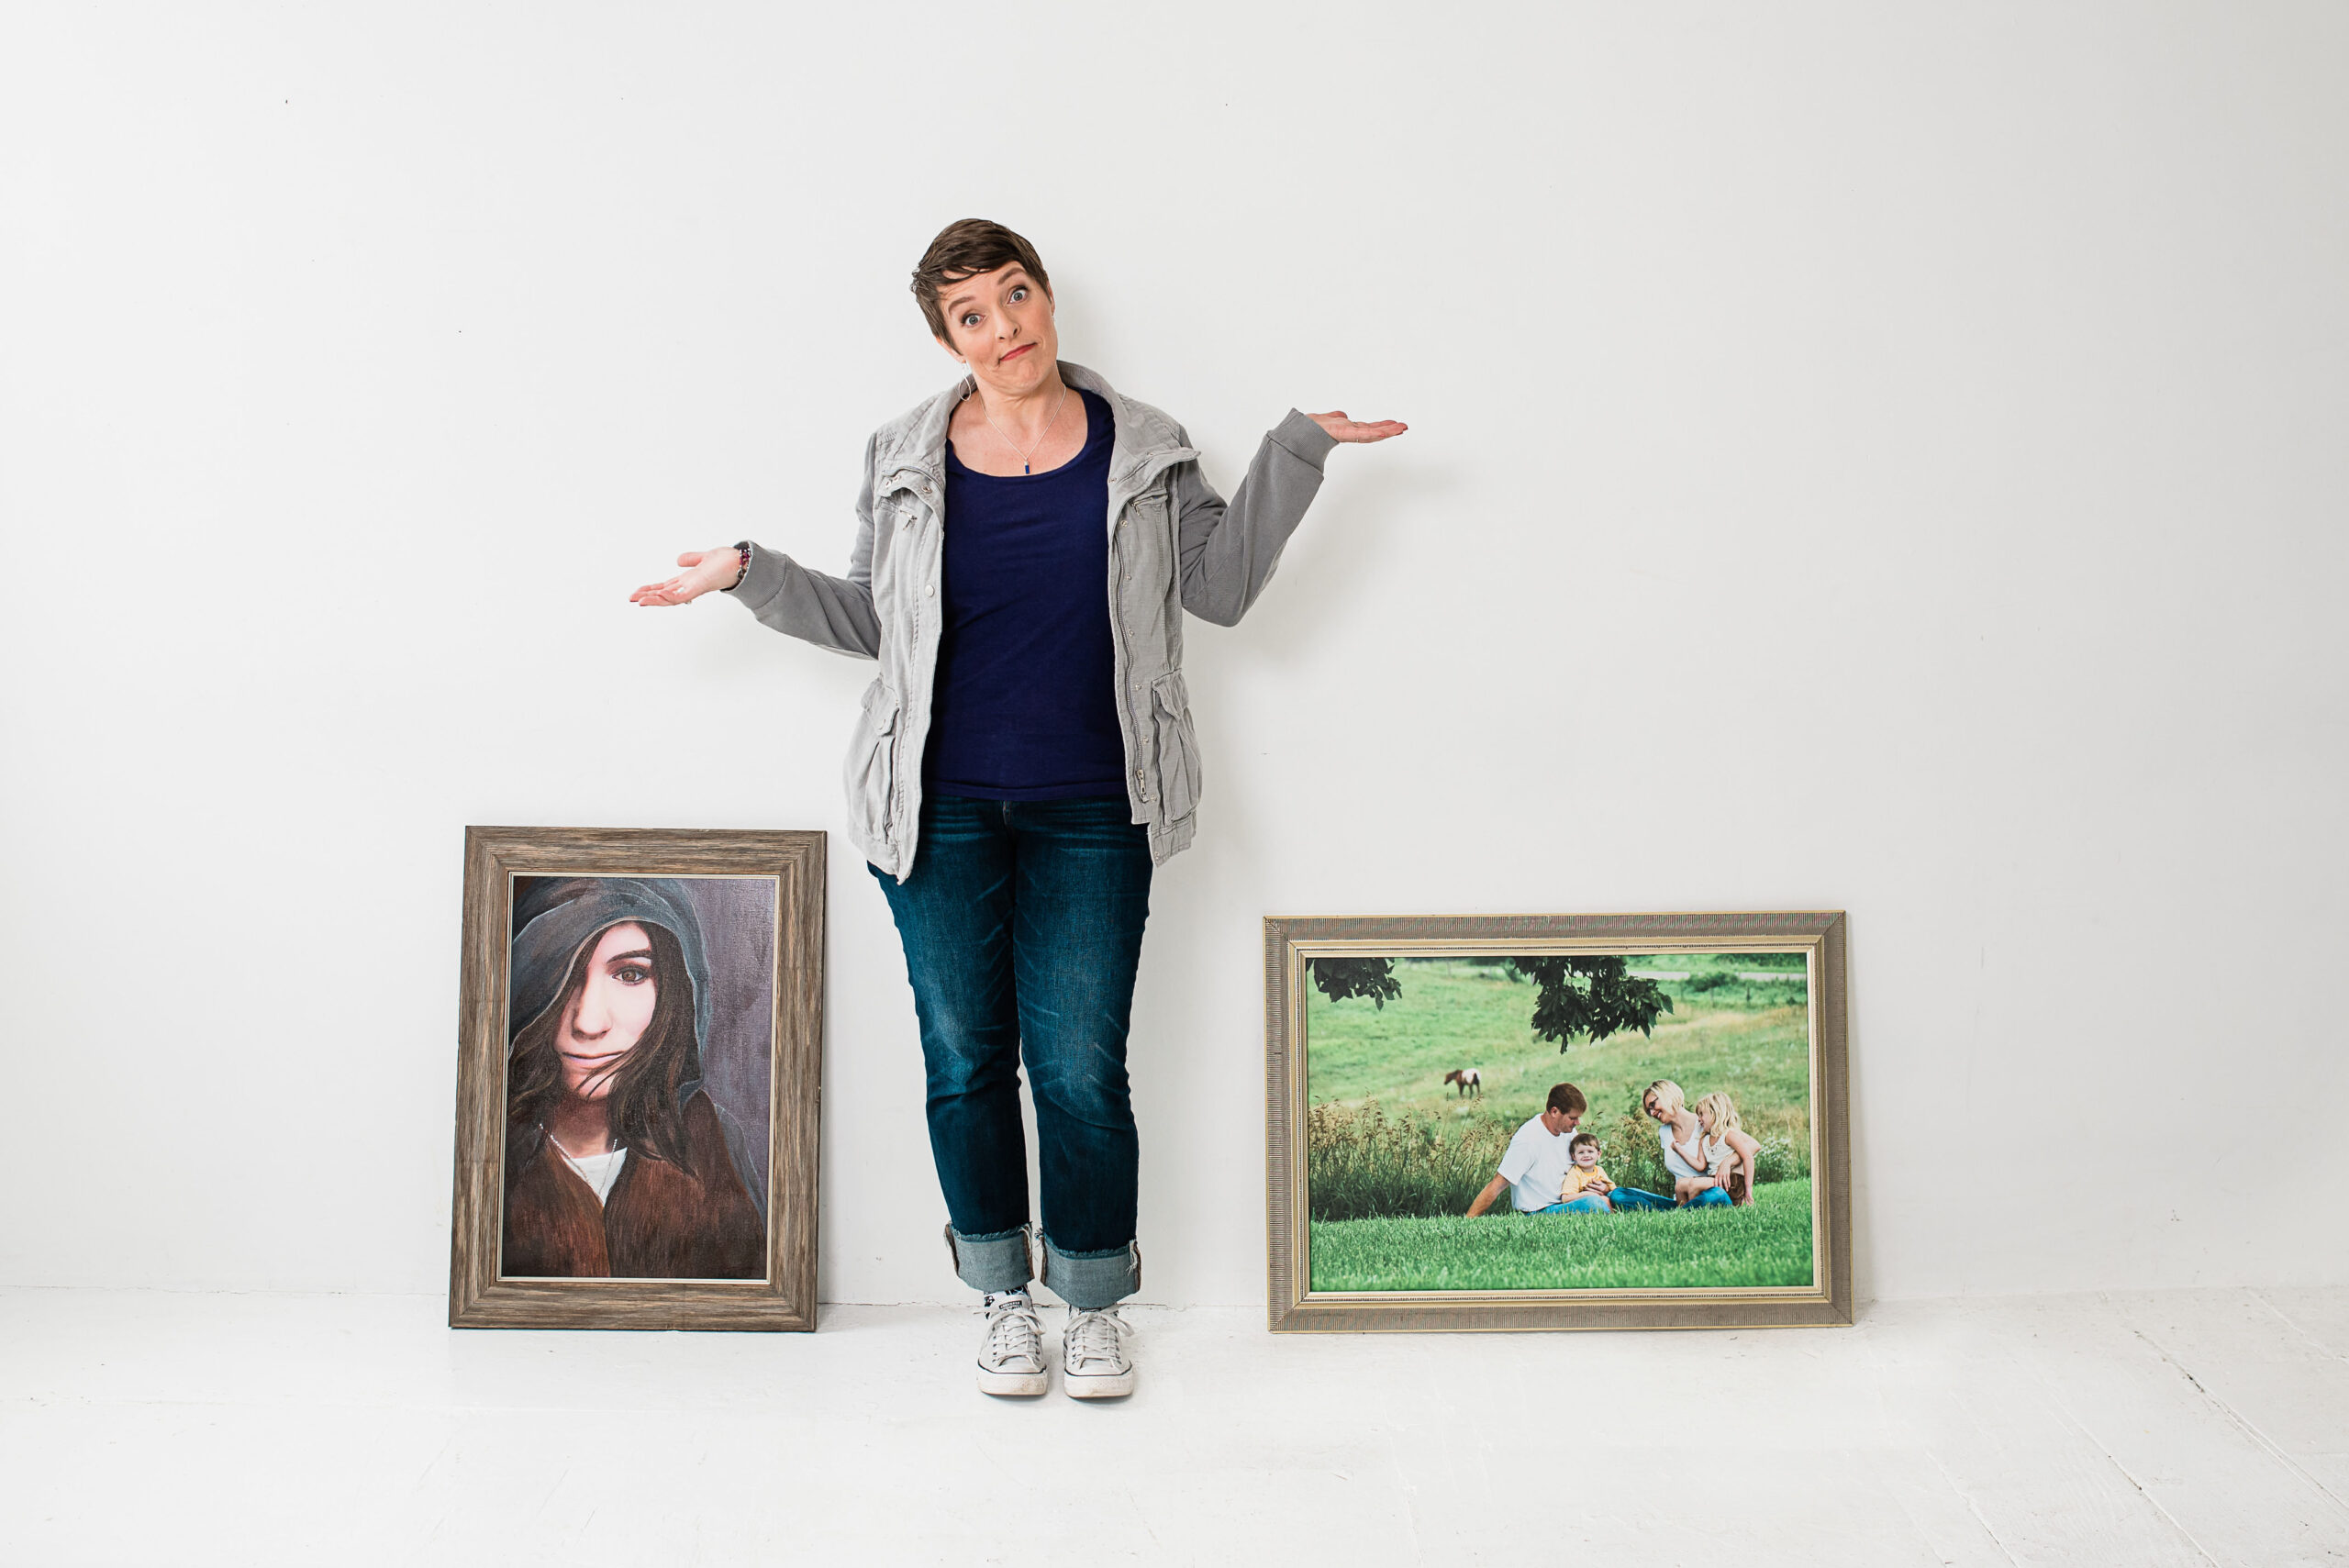 Woman showing why not with framed portraits